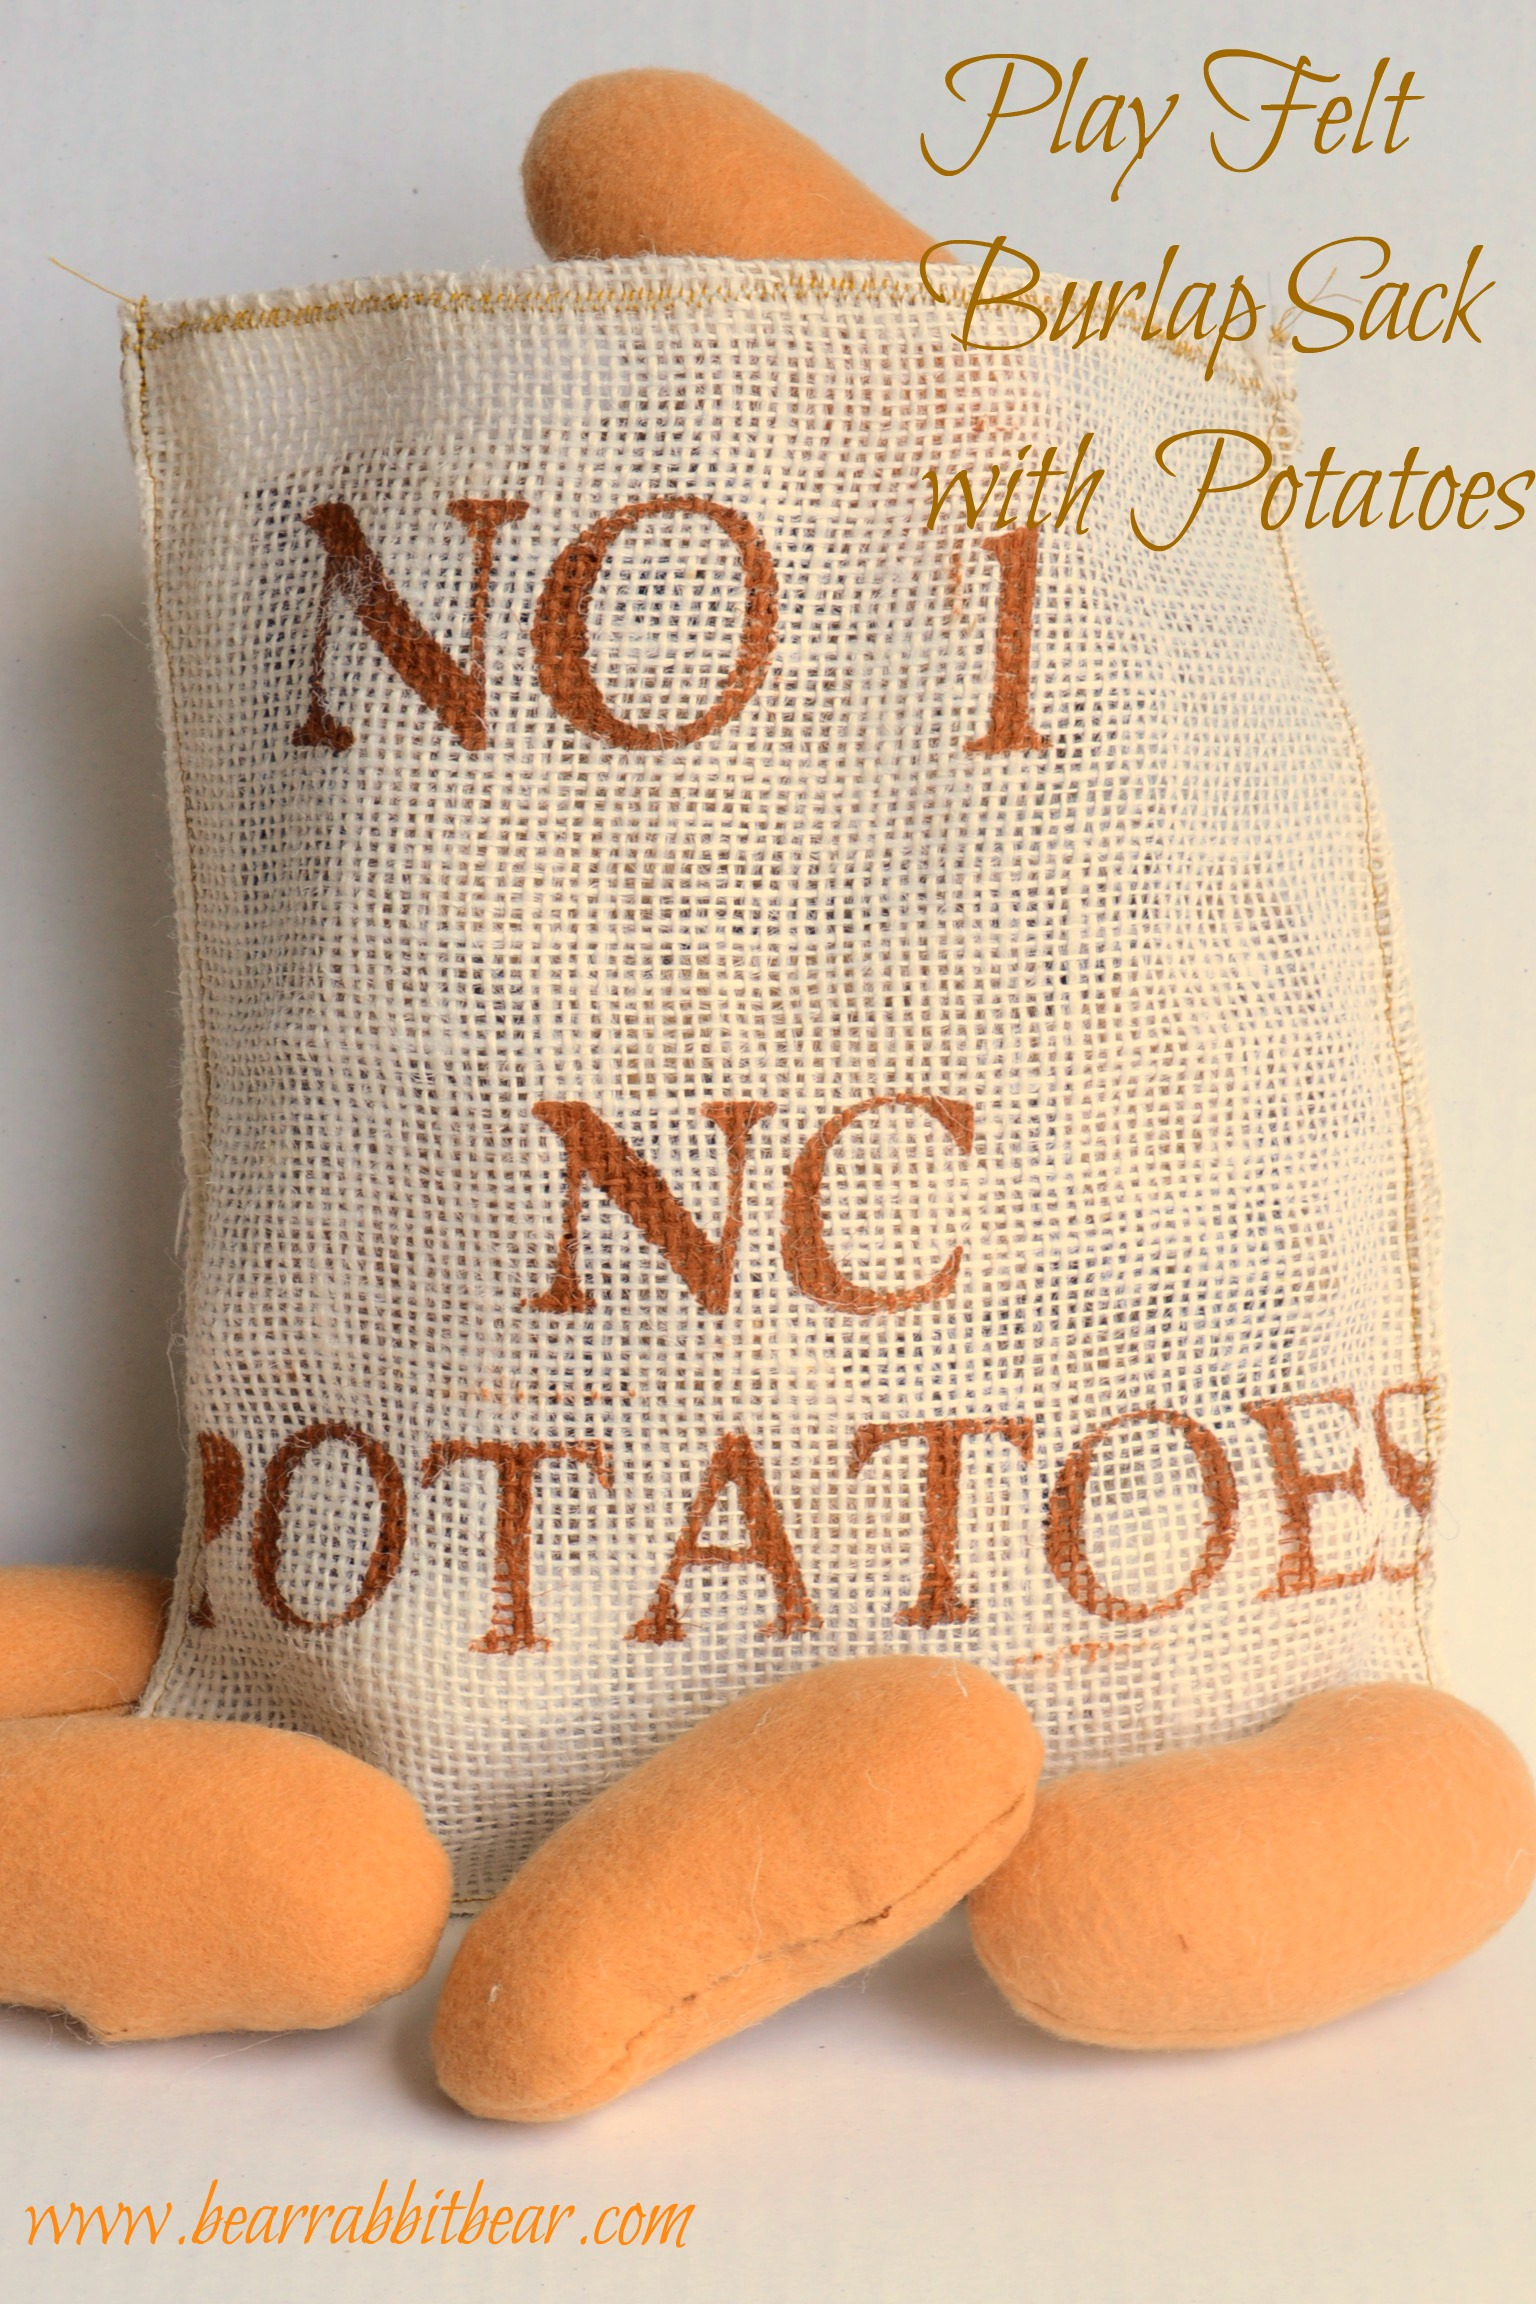 Felt Play Food: Burlap Sack & Potatoes